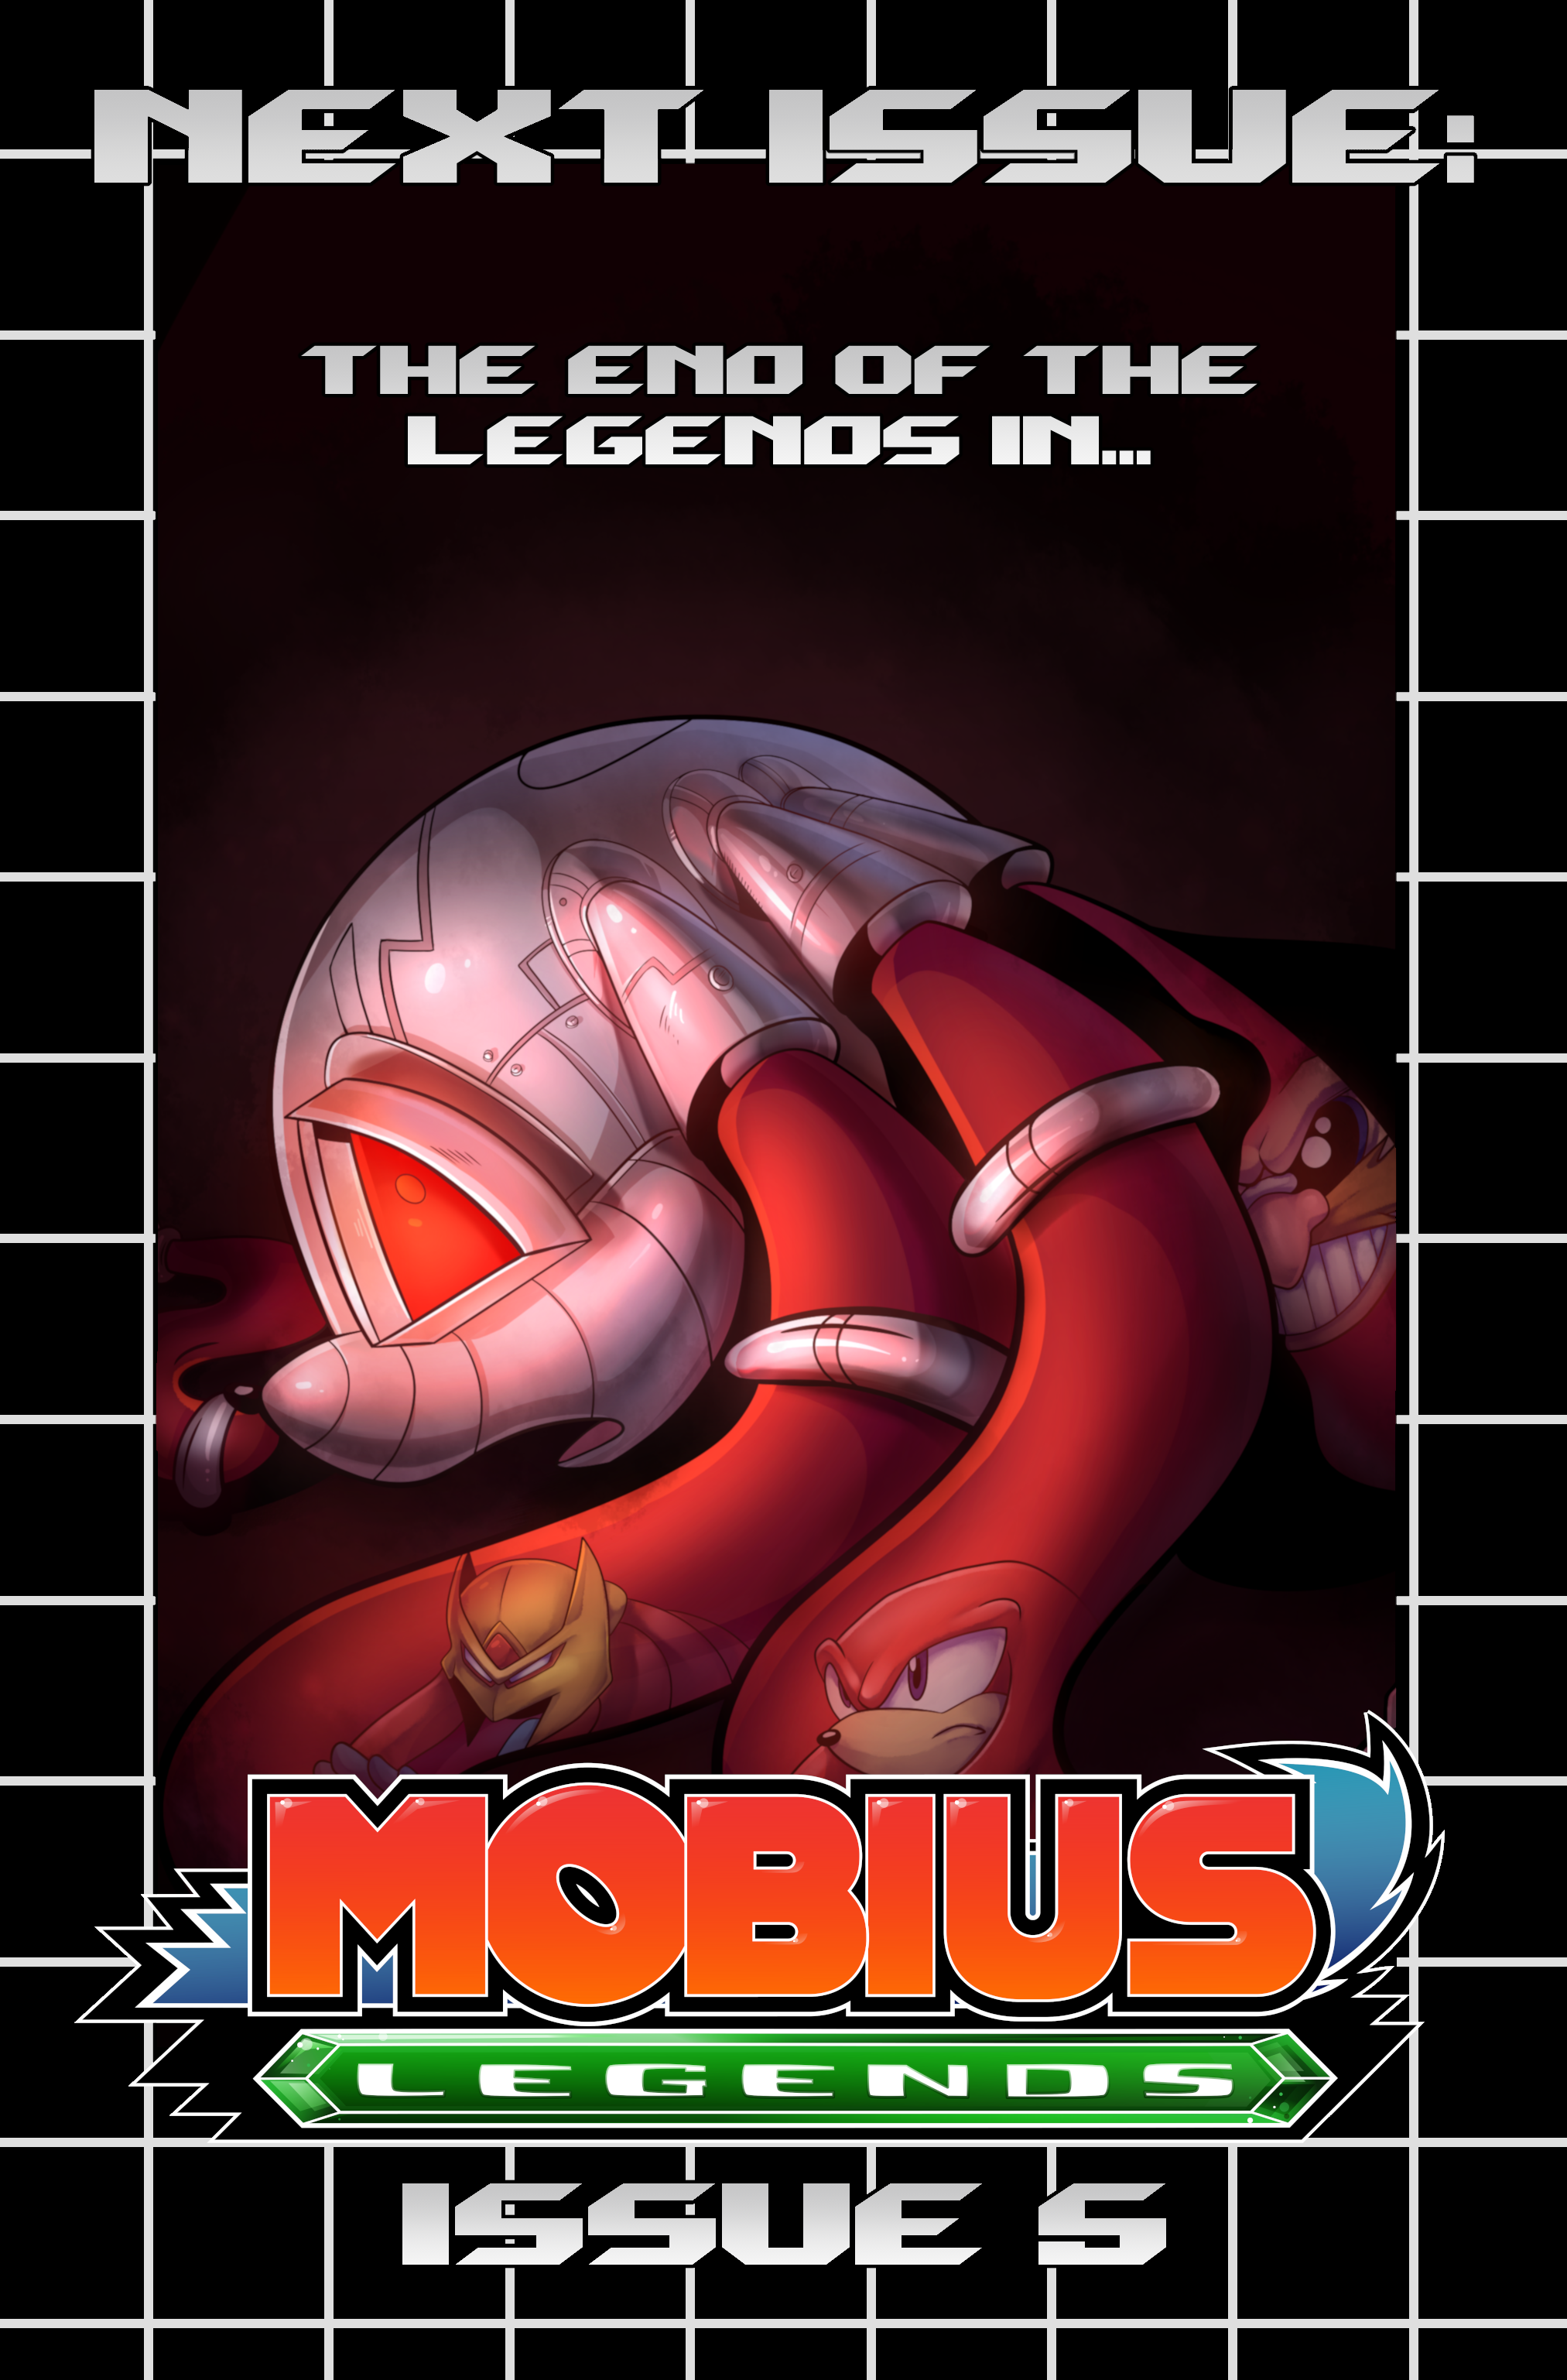 Mobius Legends #4 – Preview